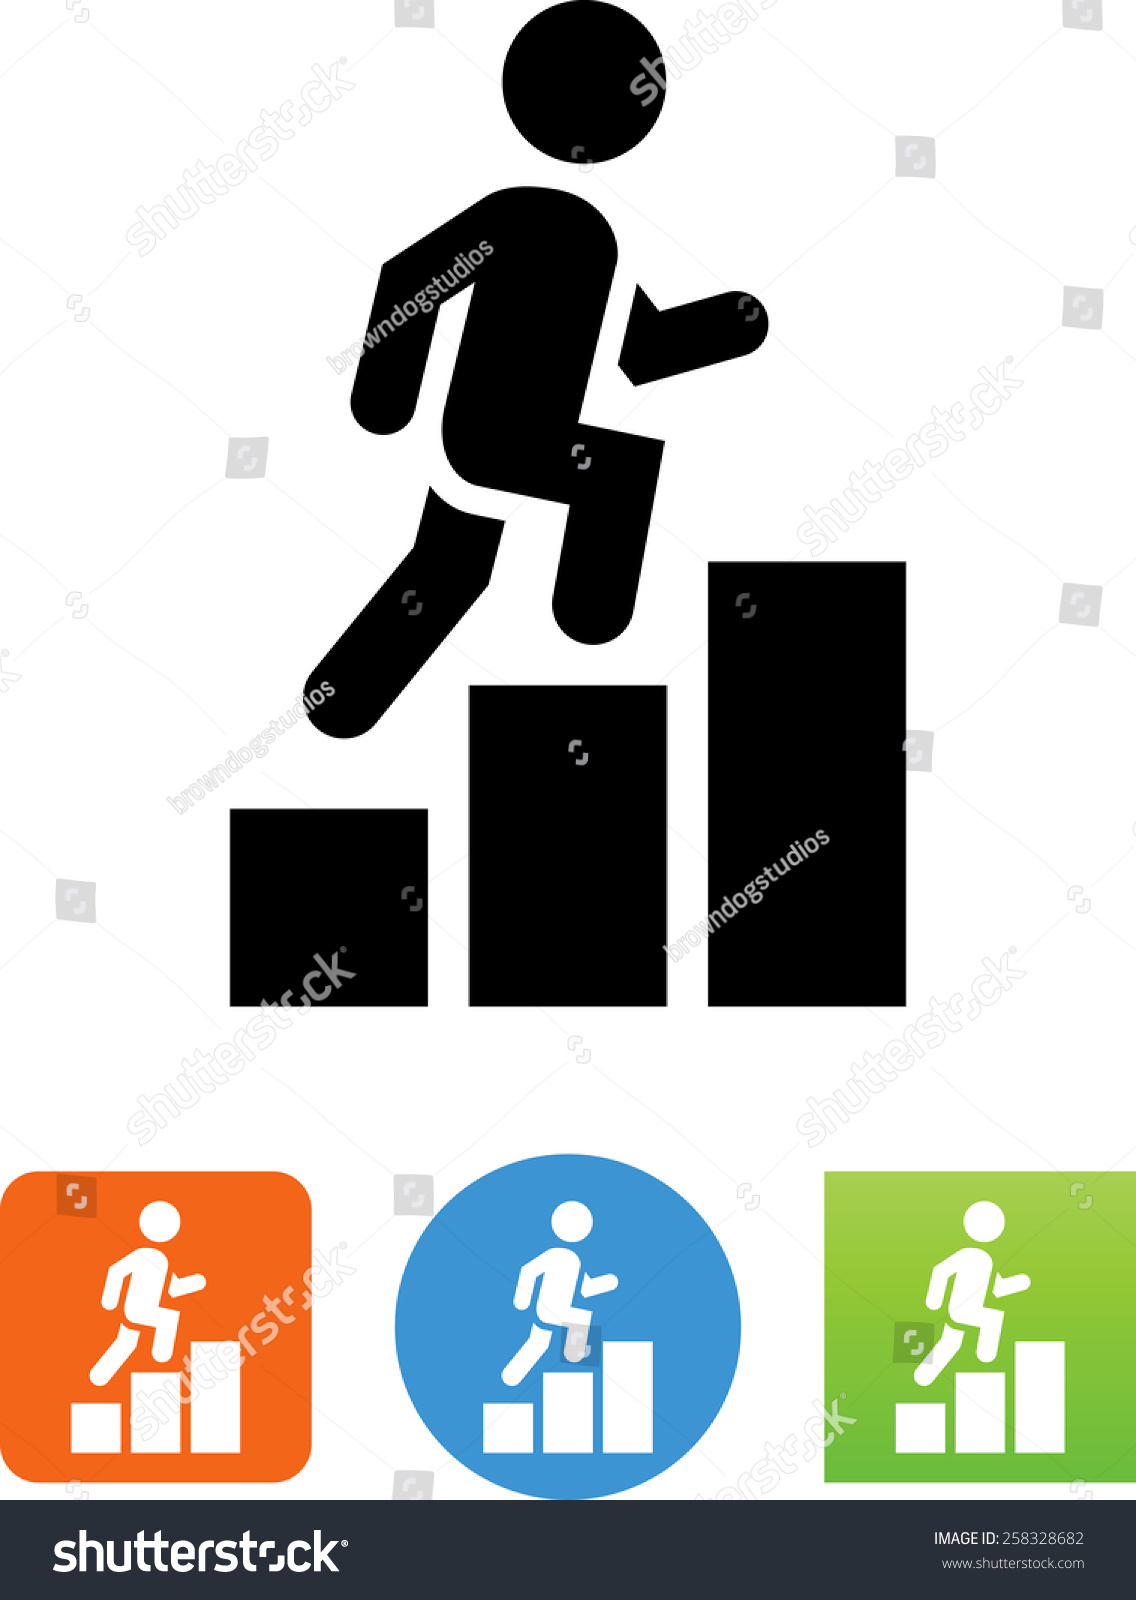 person climbing career path vector icons stock vector  person climbing a career path vector icons for video mobile apps web sites